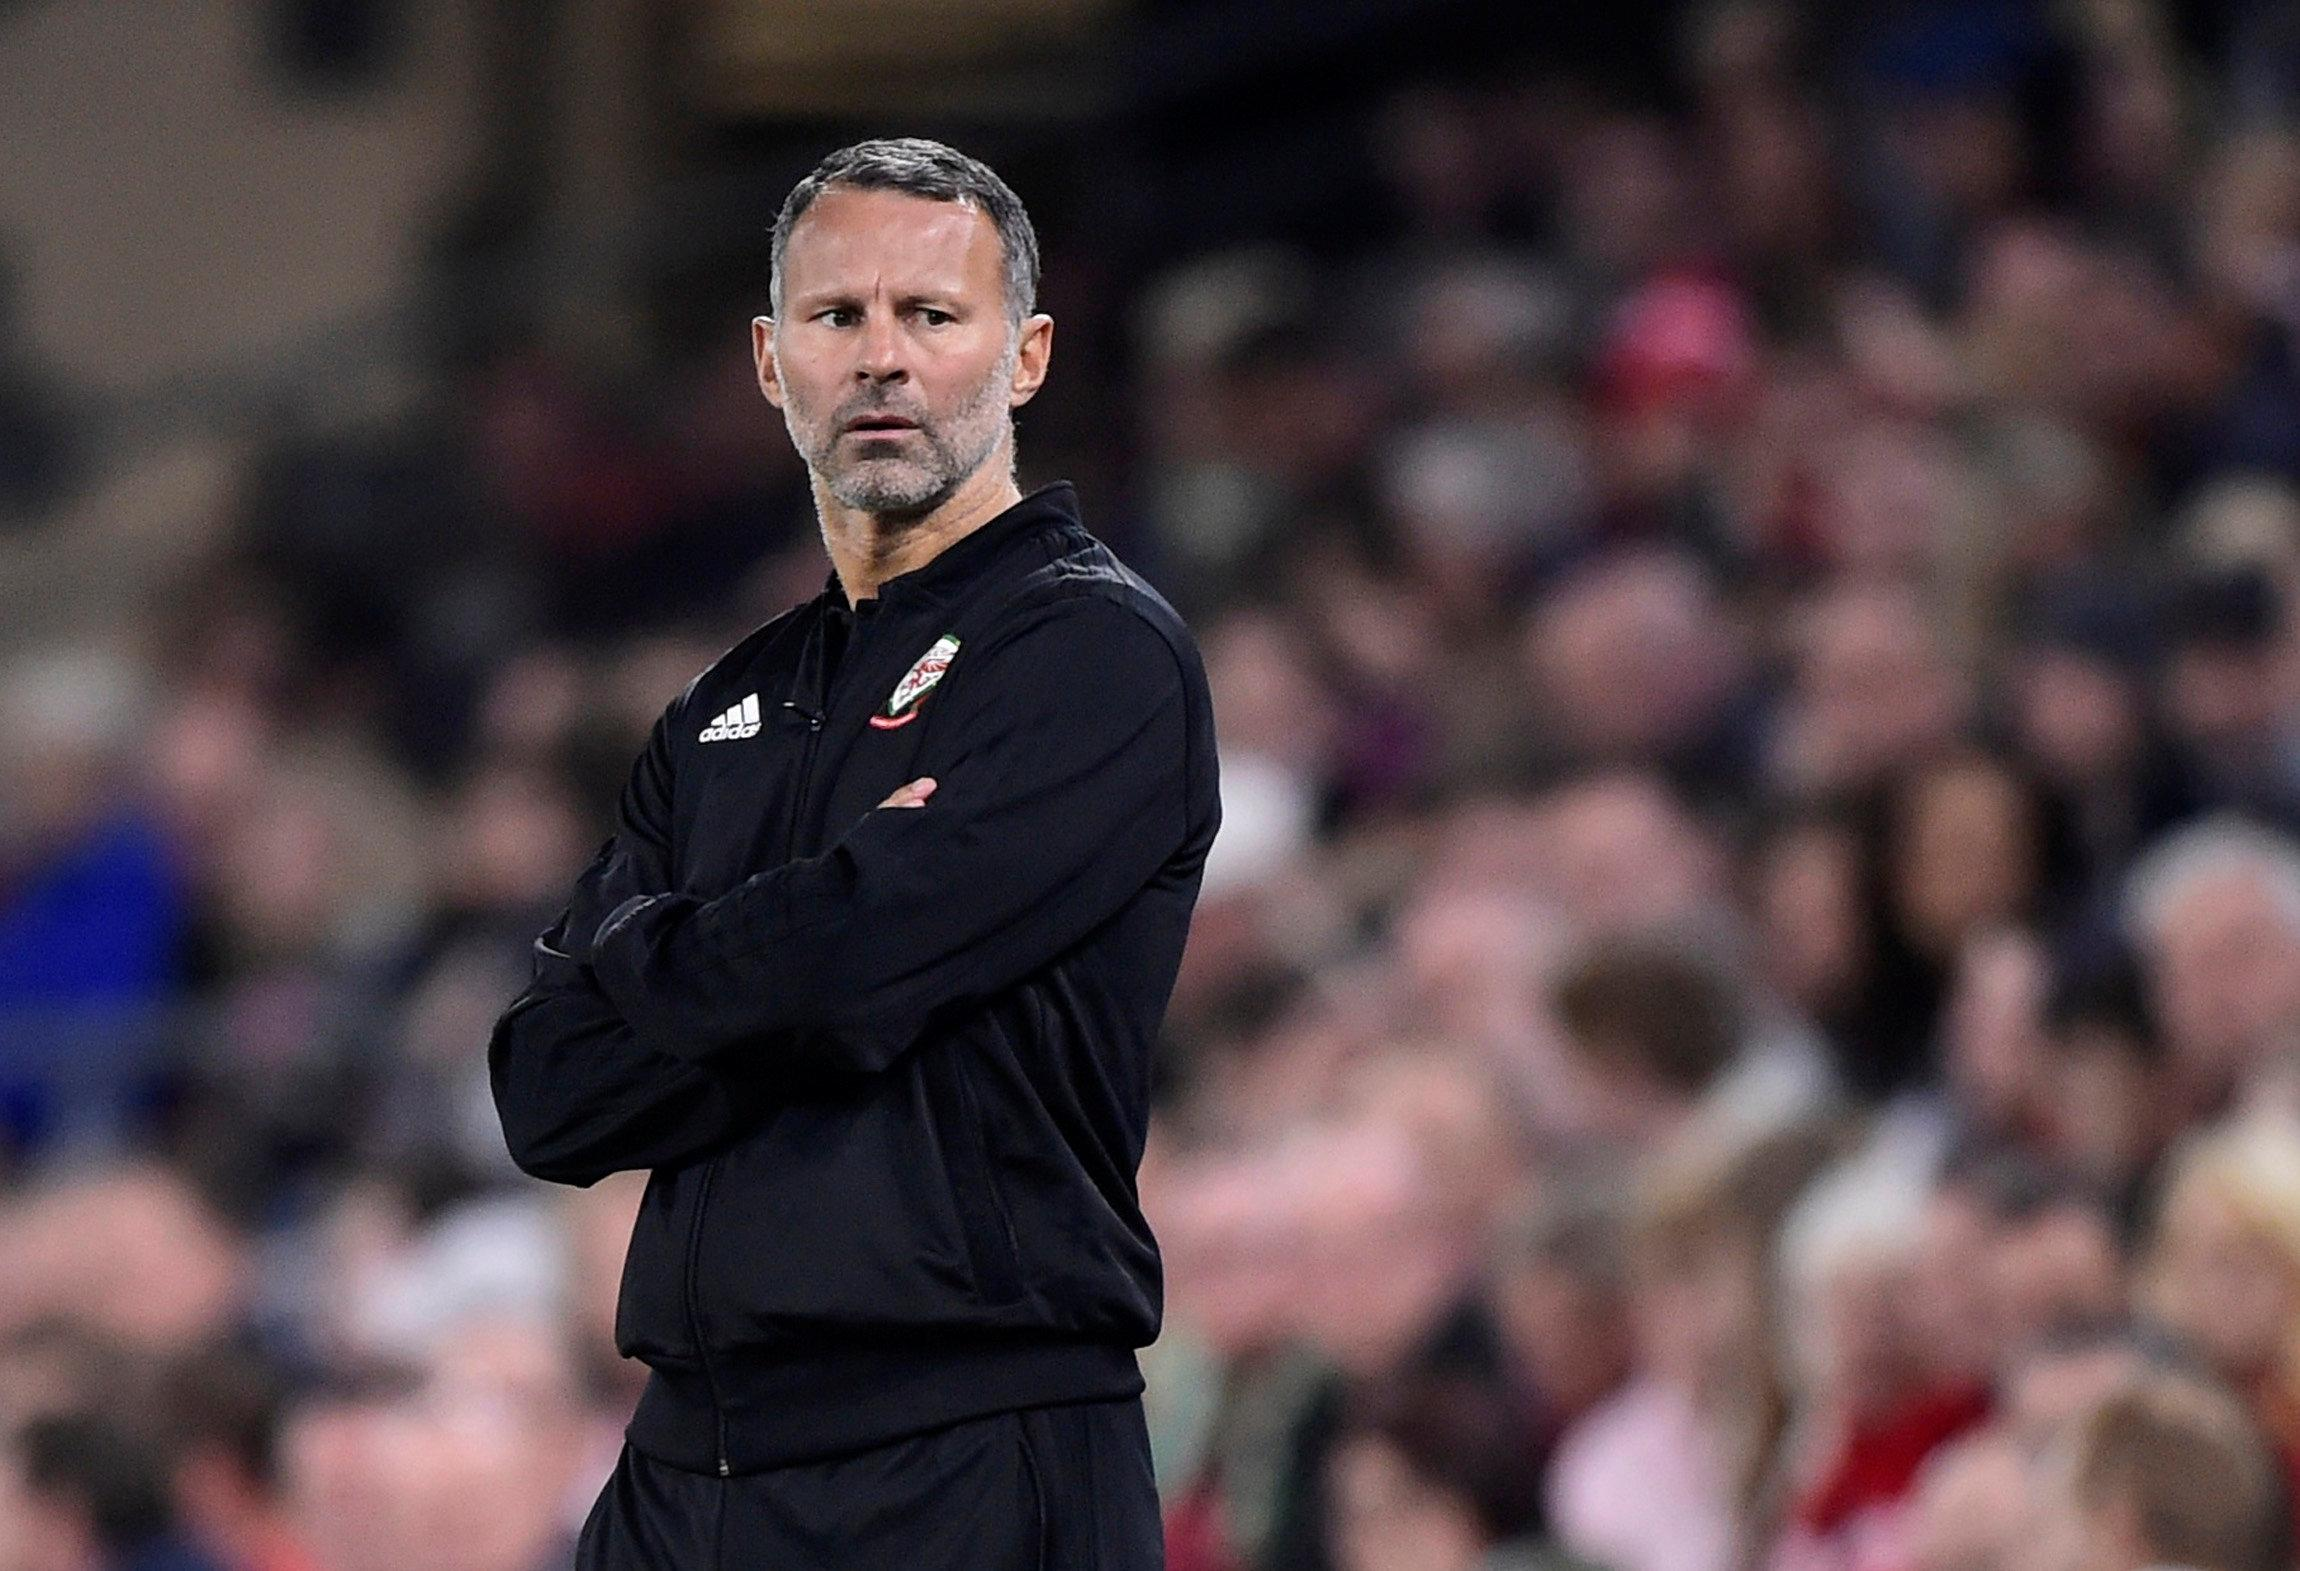 Ryan Giggs has been summoned to speak to the environmental health officer after his restaurant failed a surprise inspection